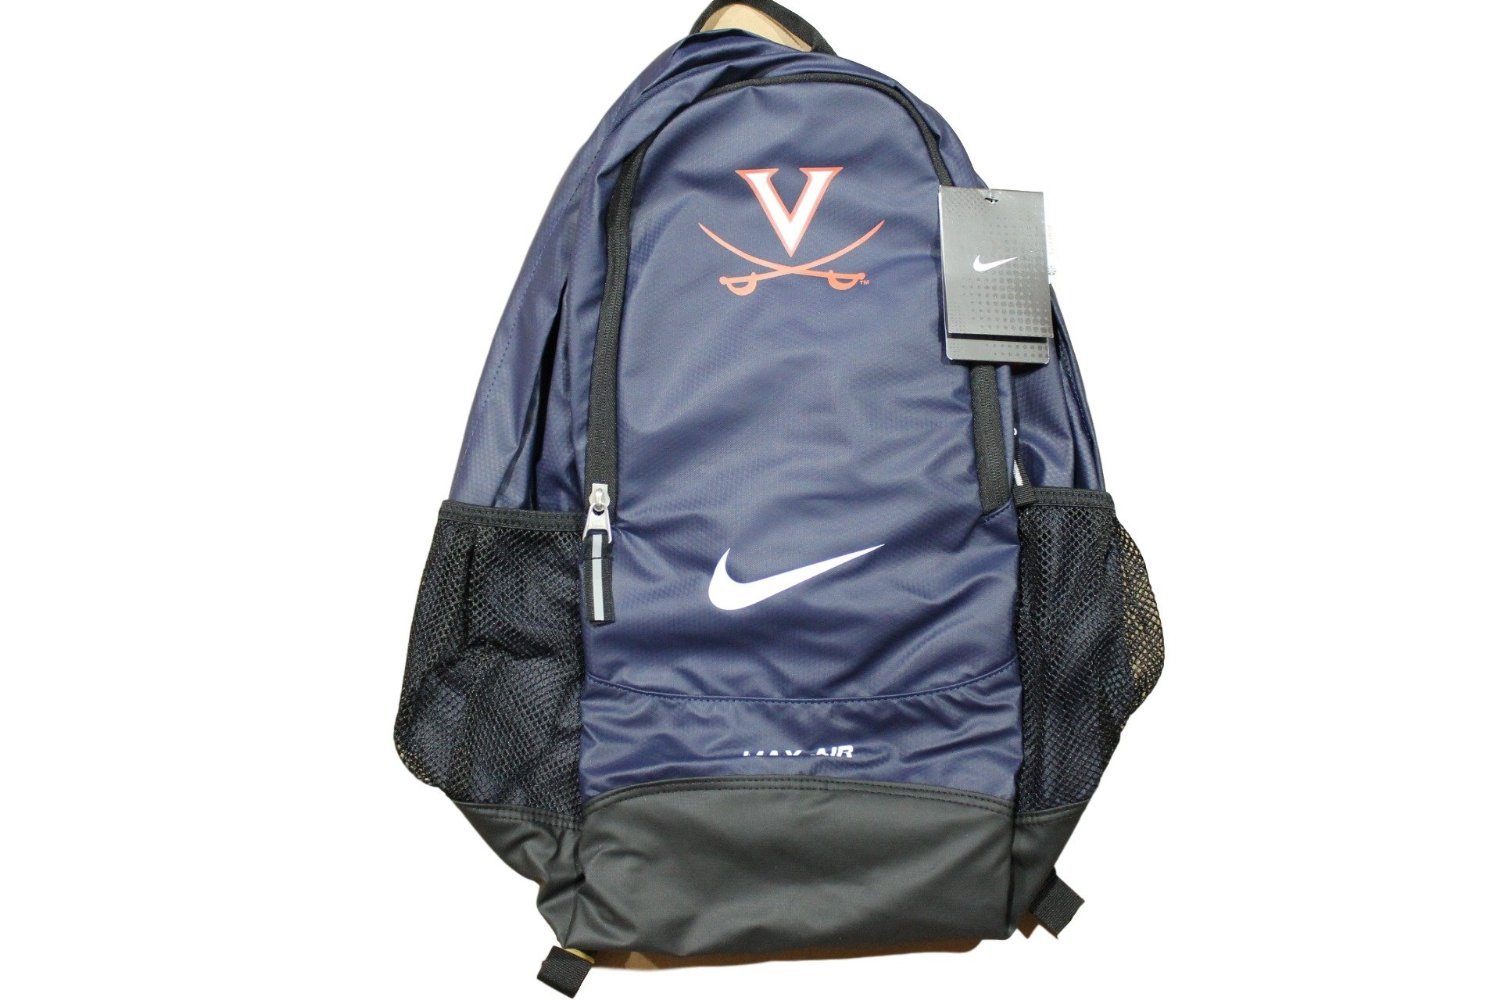 17ab0a3f6e Buy Nike Adults Max Vapor Air Virginia Backpack One Size in Cheap ...